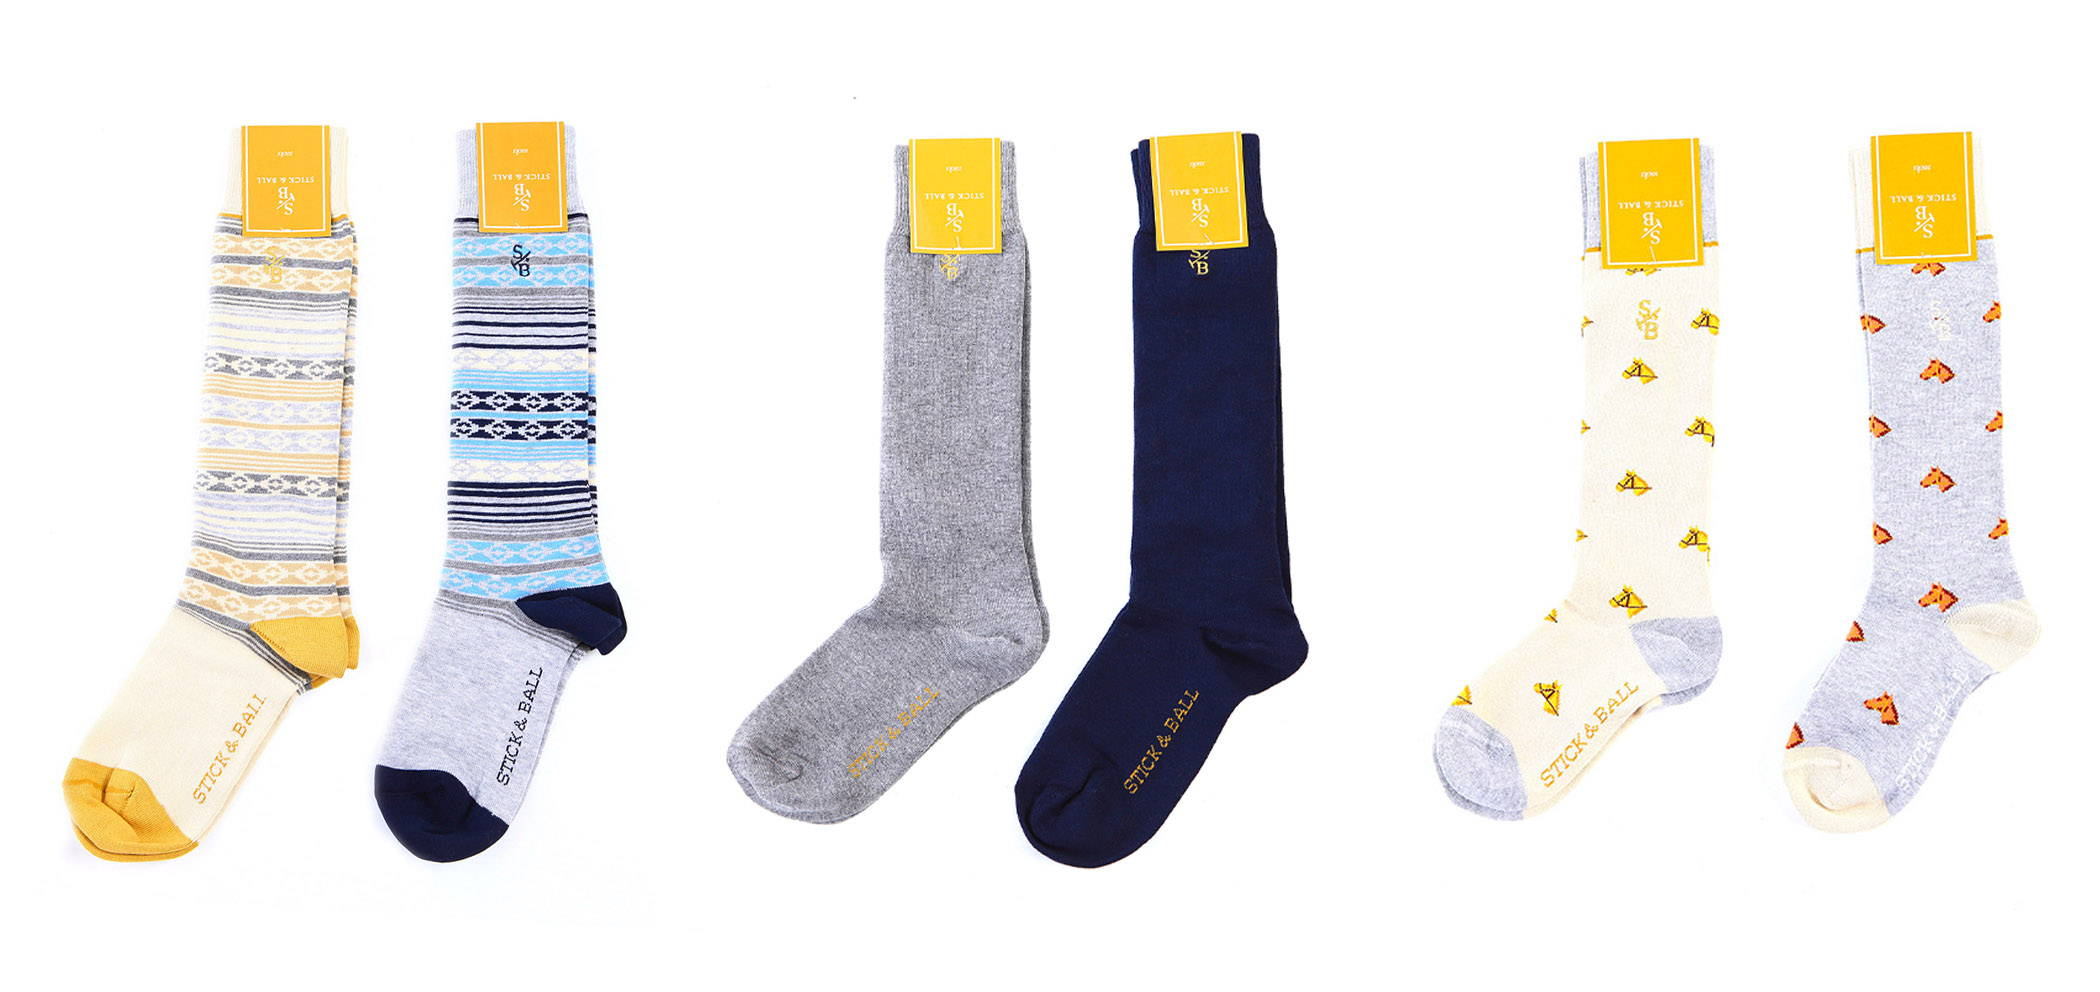 Equestrian boot socks in solid colors, pampa design & equine design - Stick & Ball